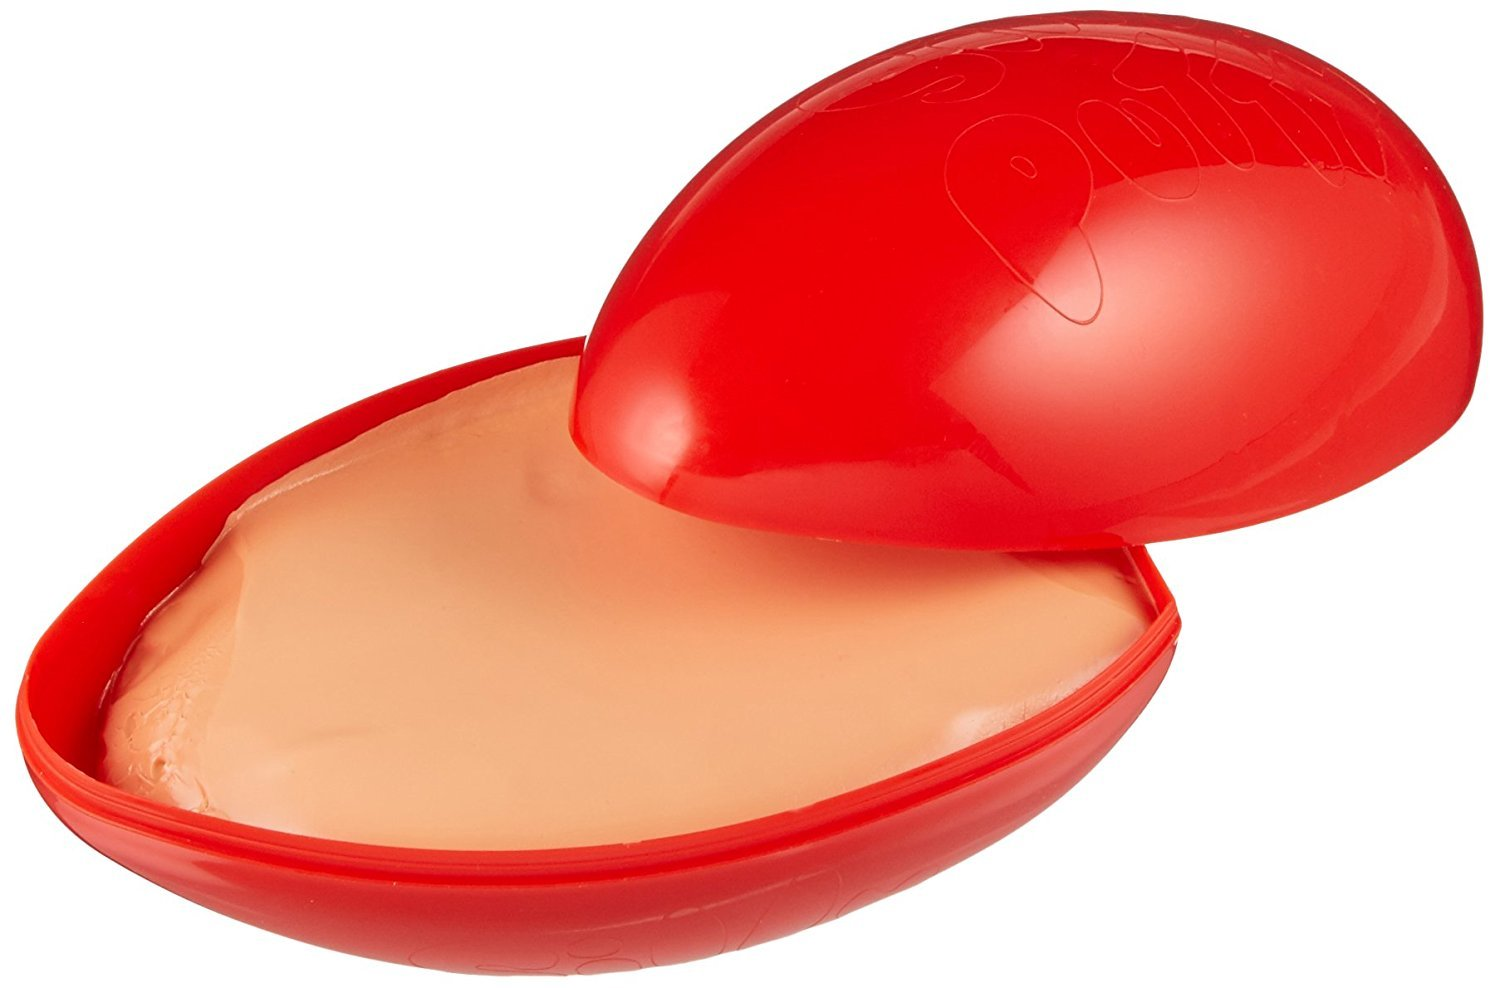 Silly putty clipart 4 » Clipart Portal.